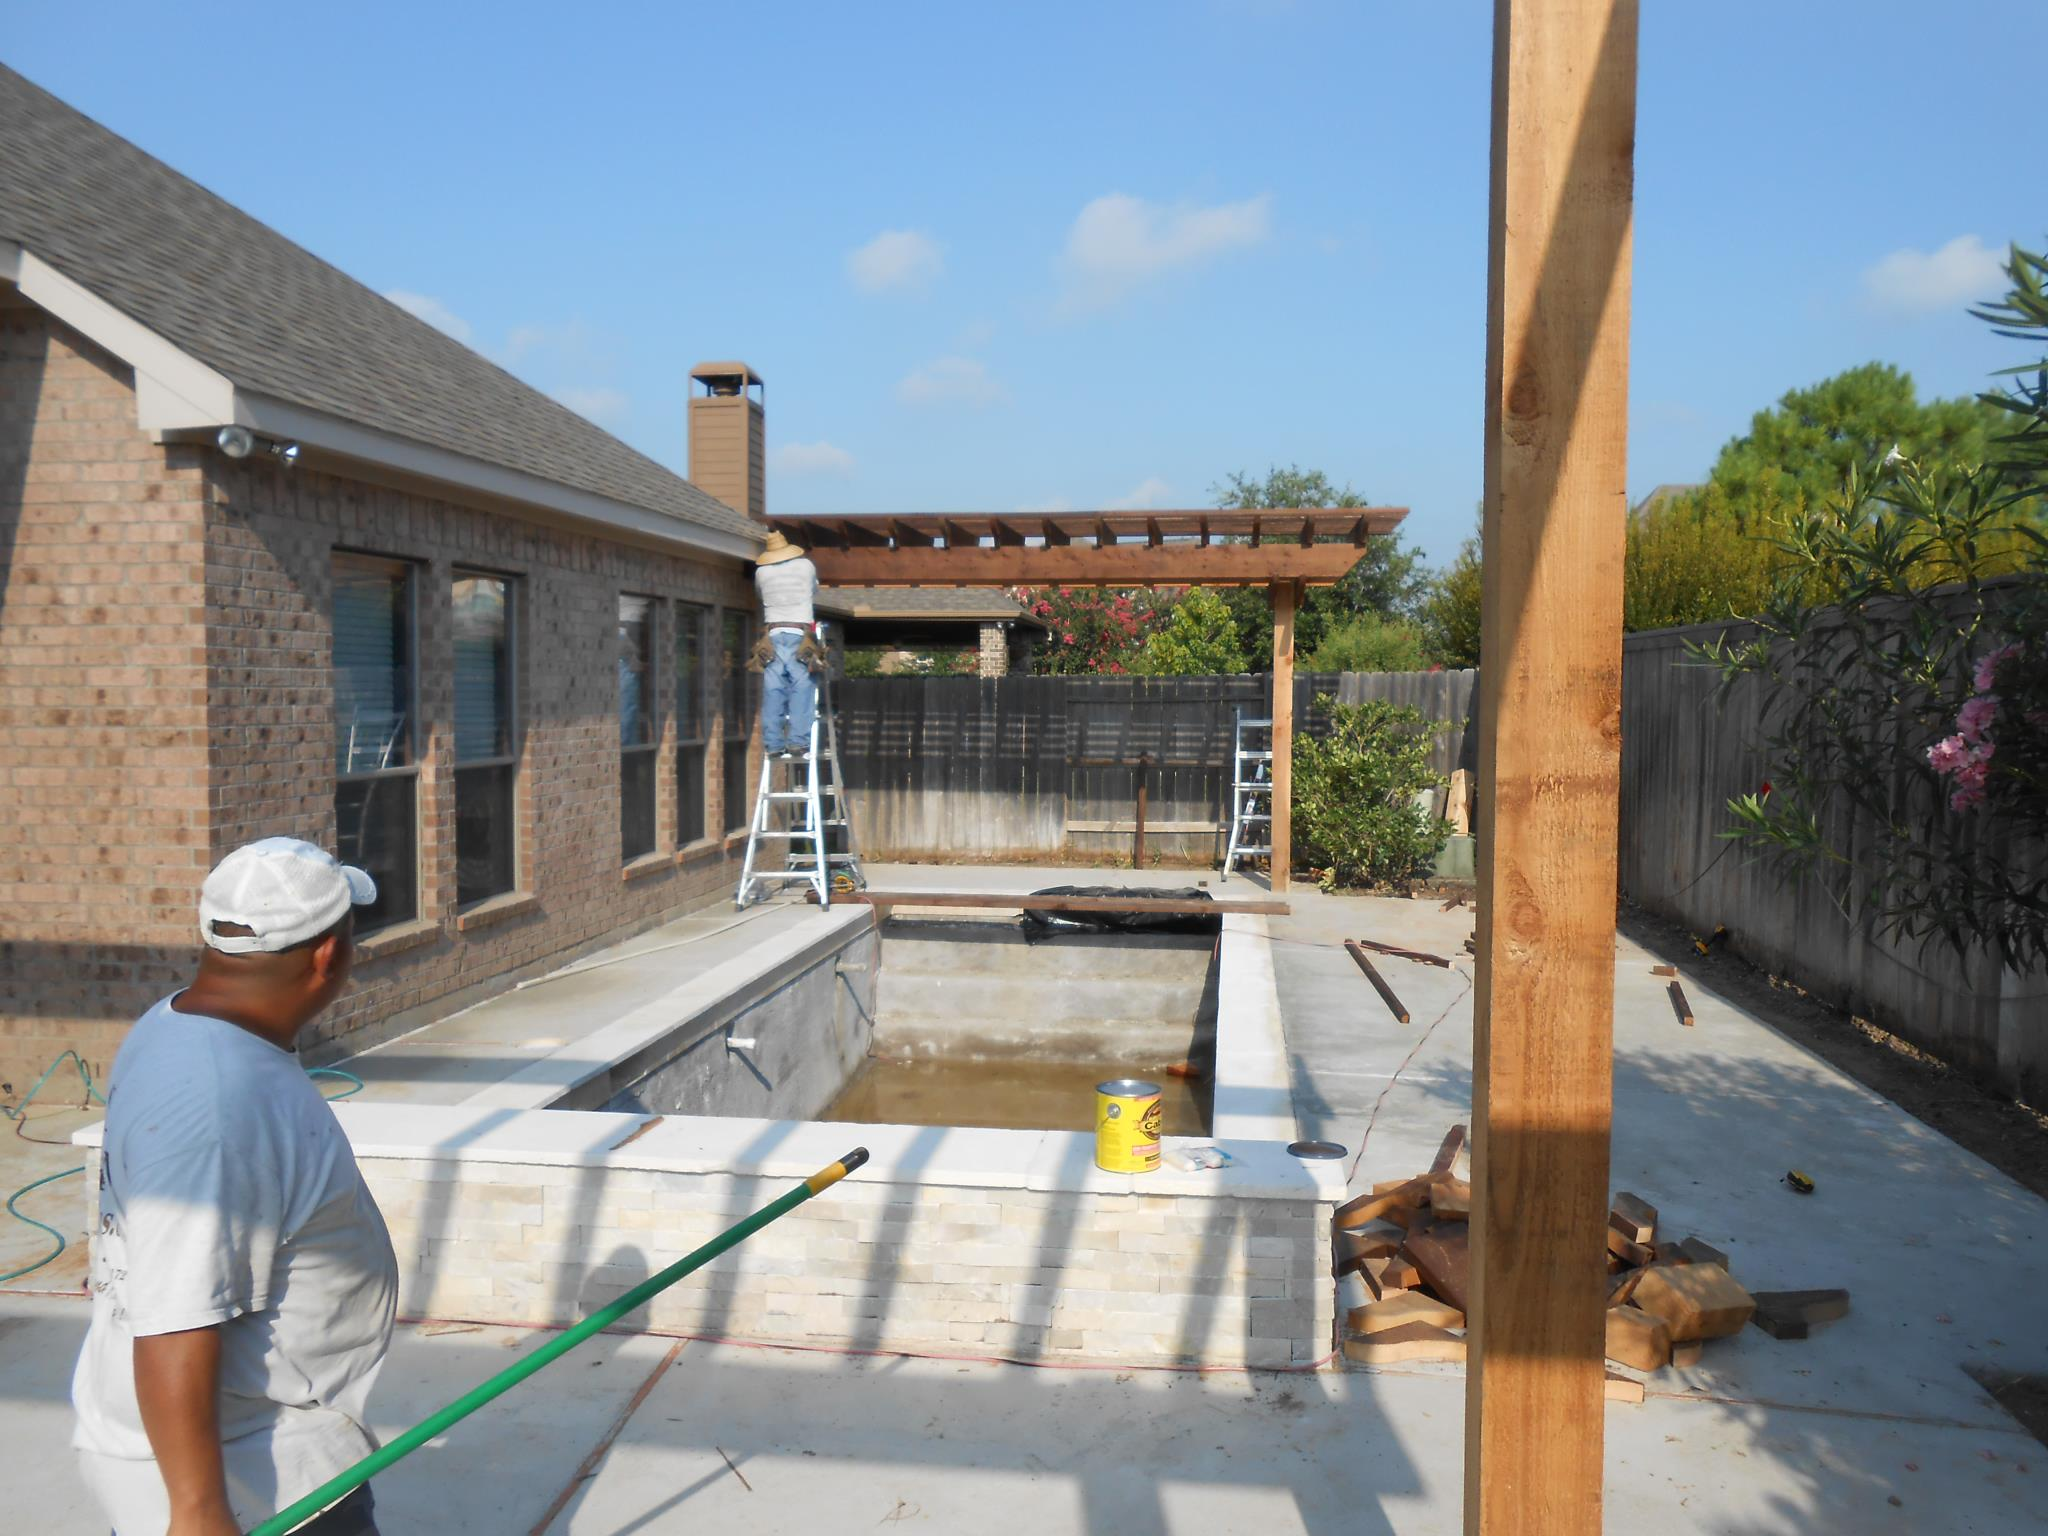 Kelly Swimming Pool Patio Covers Katy Tx Patio Builder